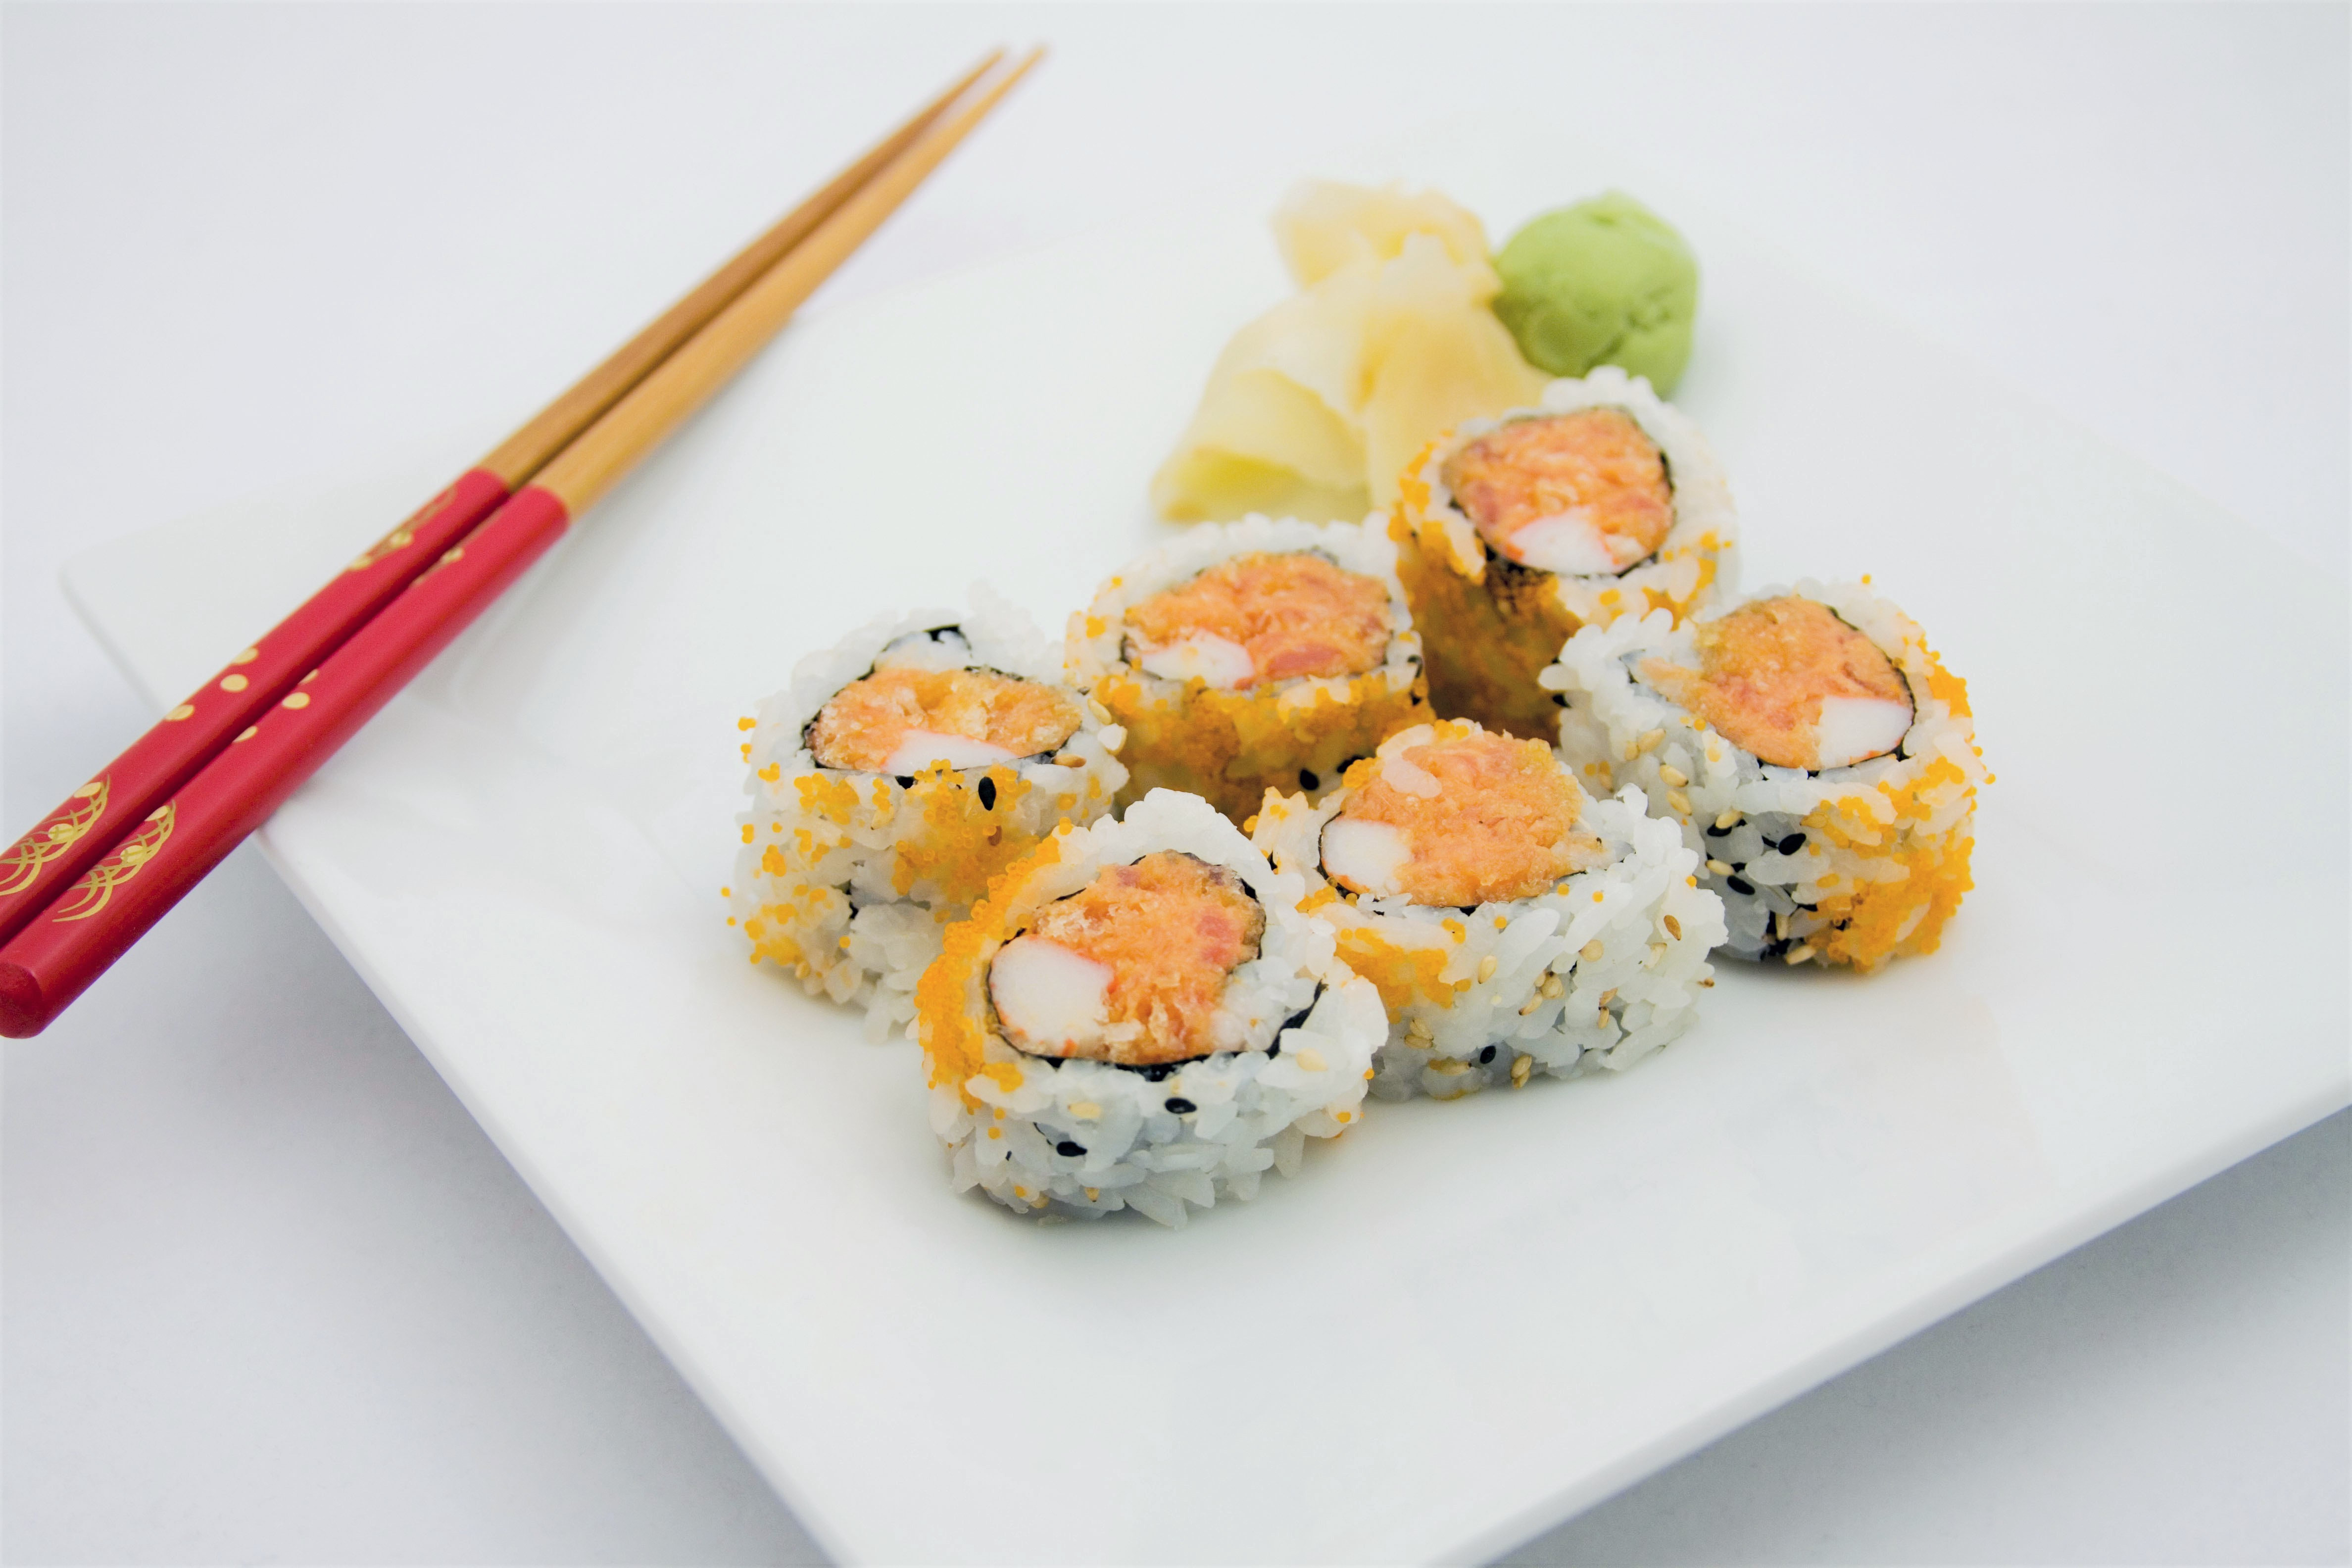 Spicy Tuna Rolls on Plate with Chopsticks Maki Roll